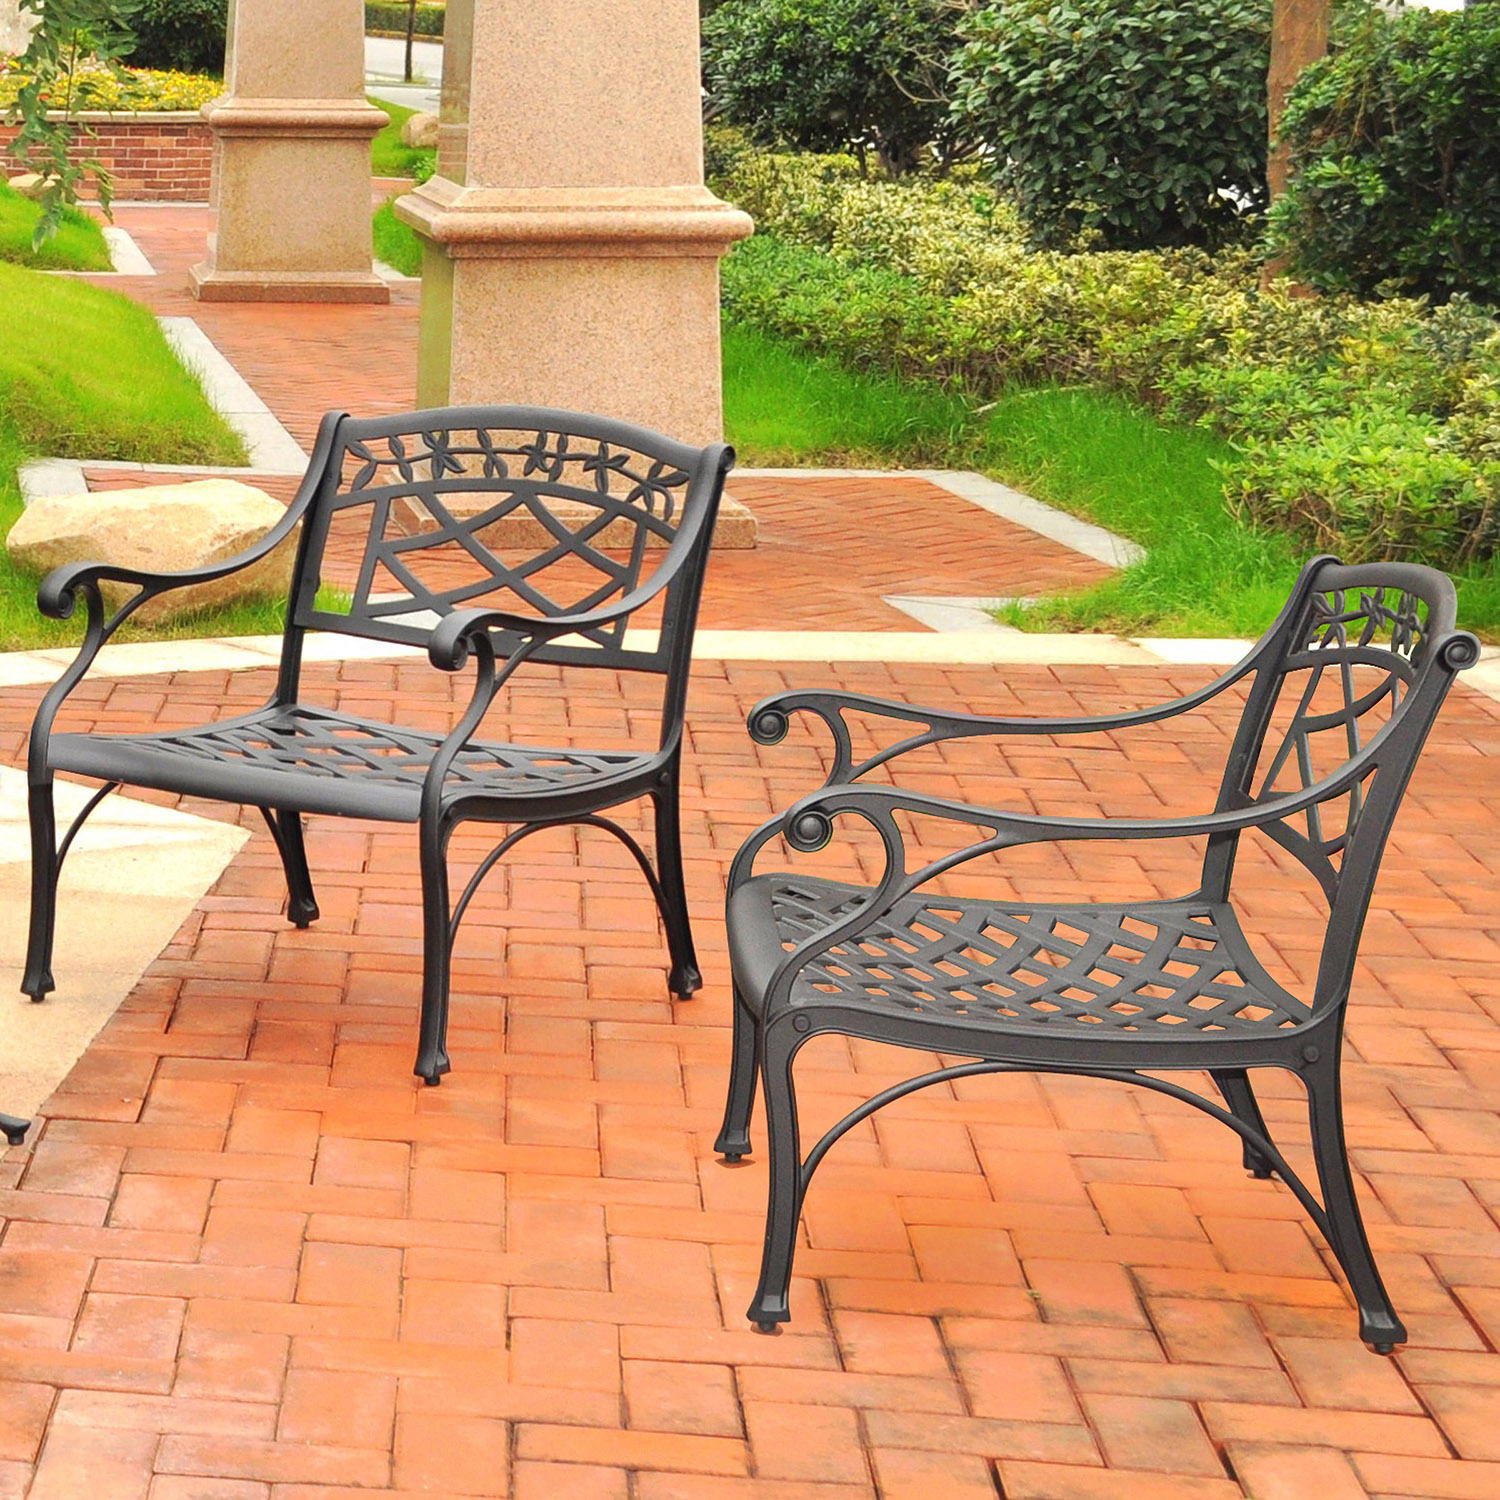 Sedona 2-Piece Conversation Seating Set - Cast Aluminum, Charcoal Black - CROS-KO60006BK